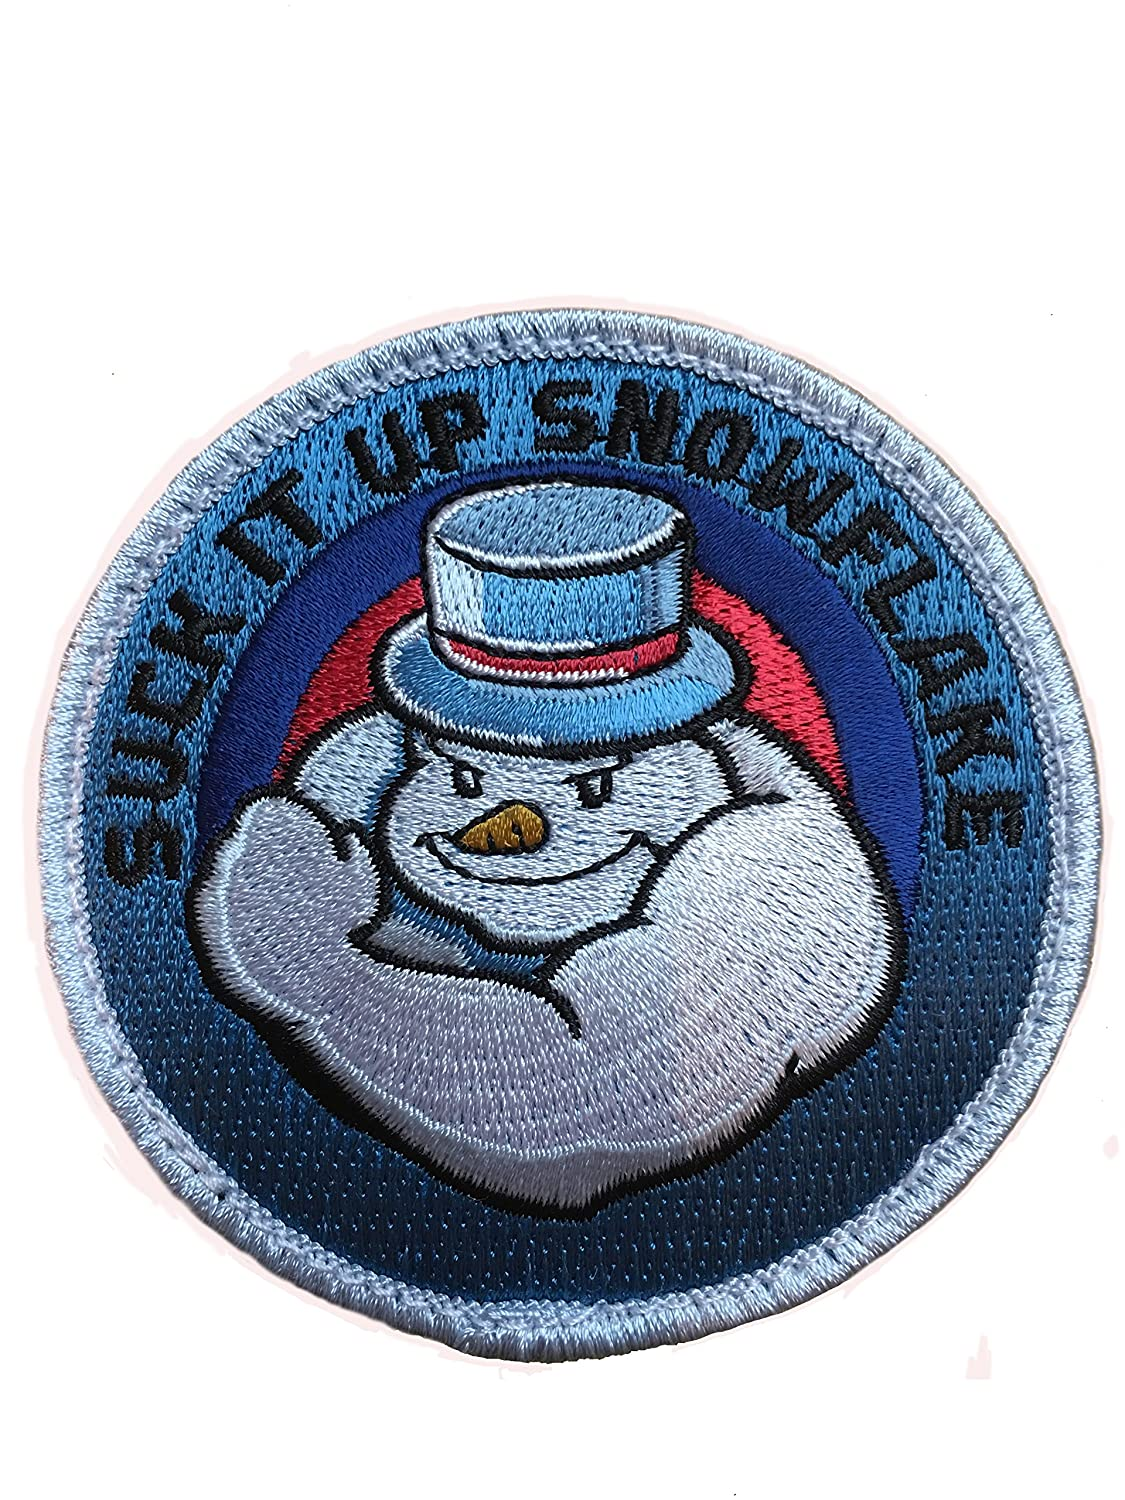 Suck It up Snowflake - Embroidered Morale Patch F-Bomb Morale Gear 4337020736